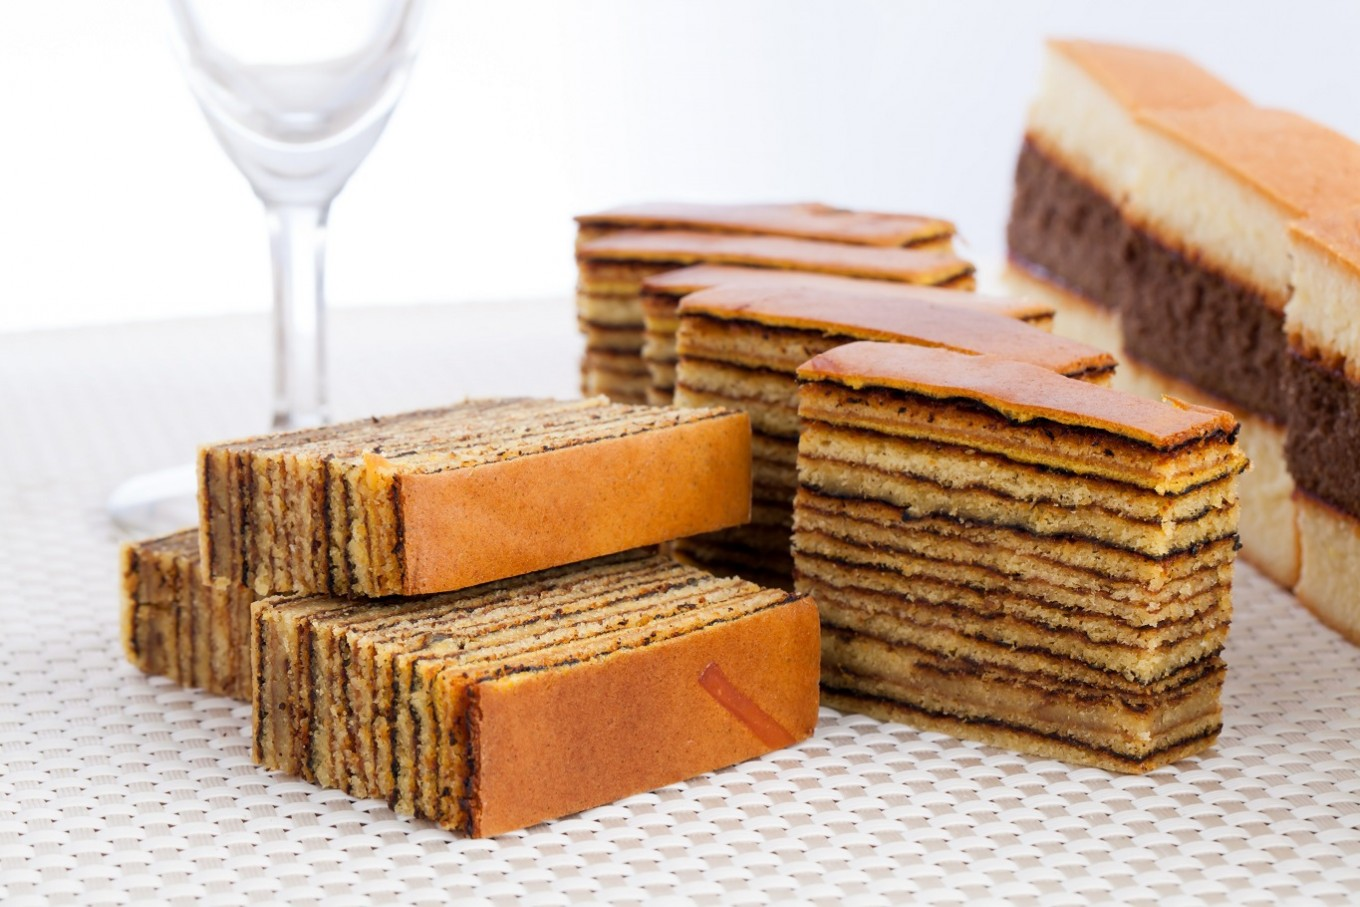 Lapis legit named among world's most delicious national cakes by CNN